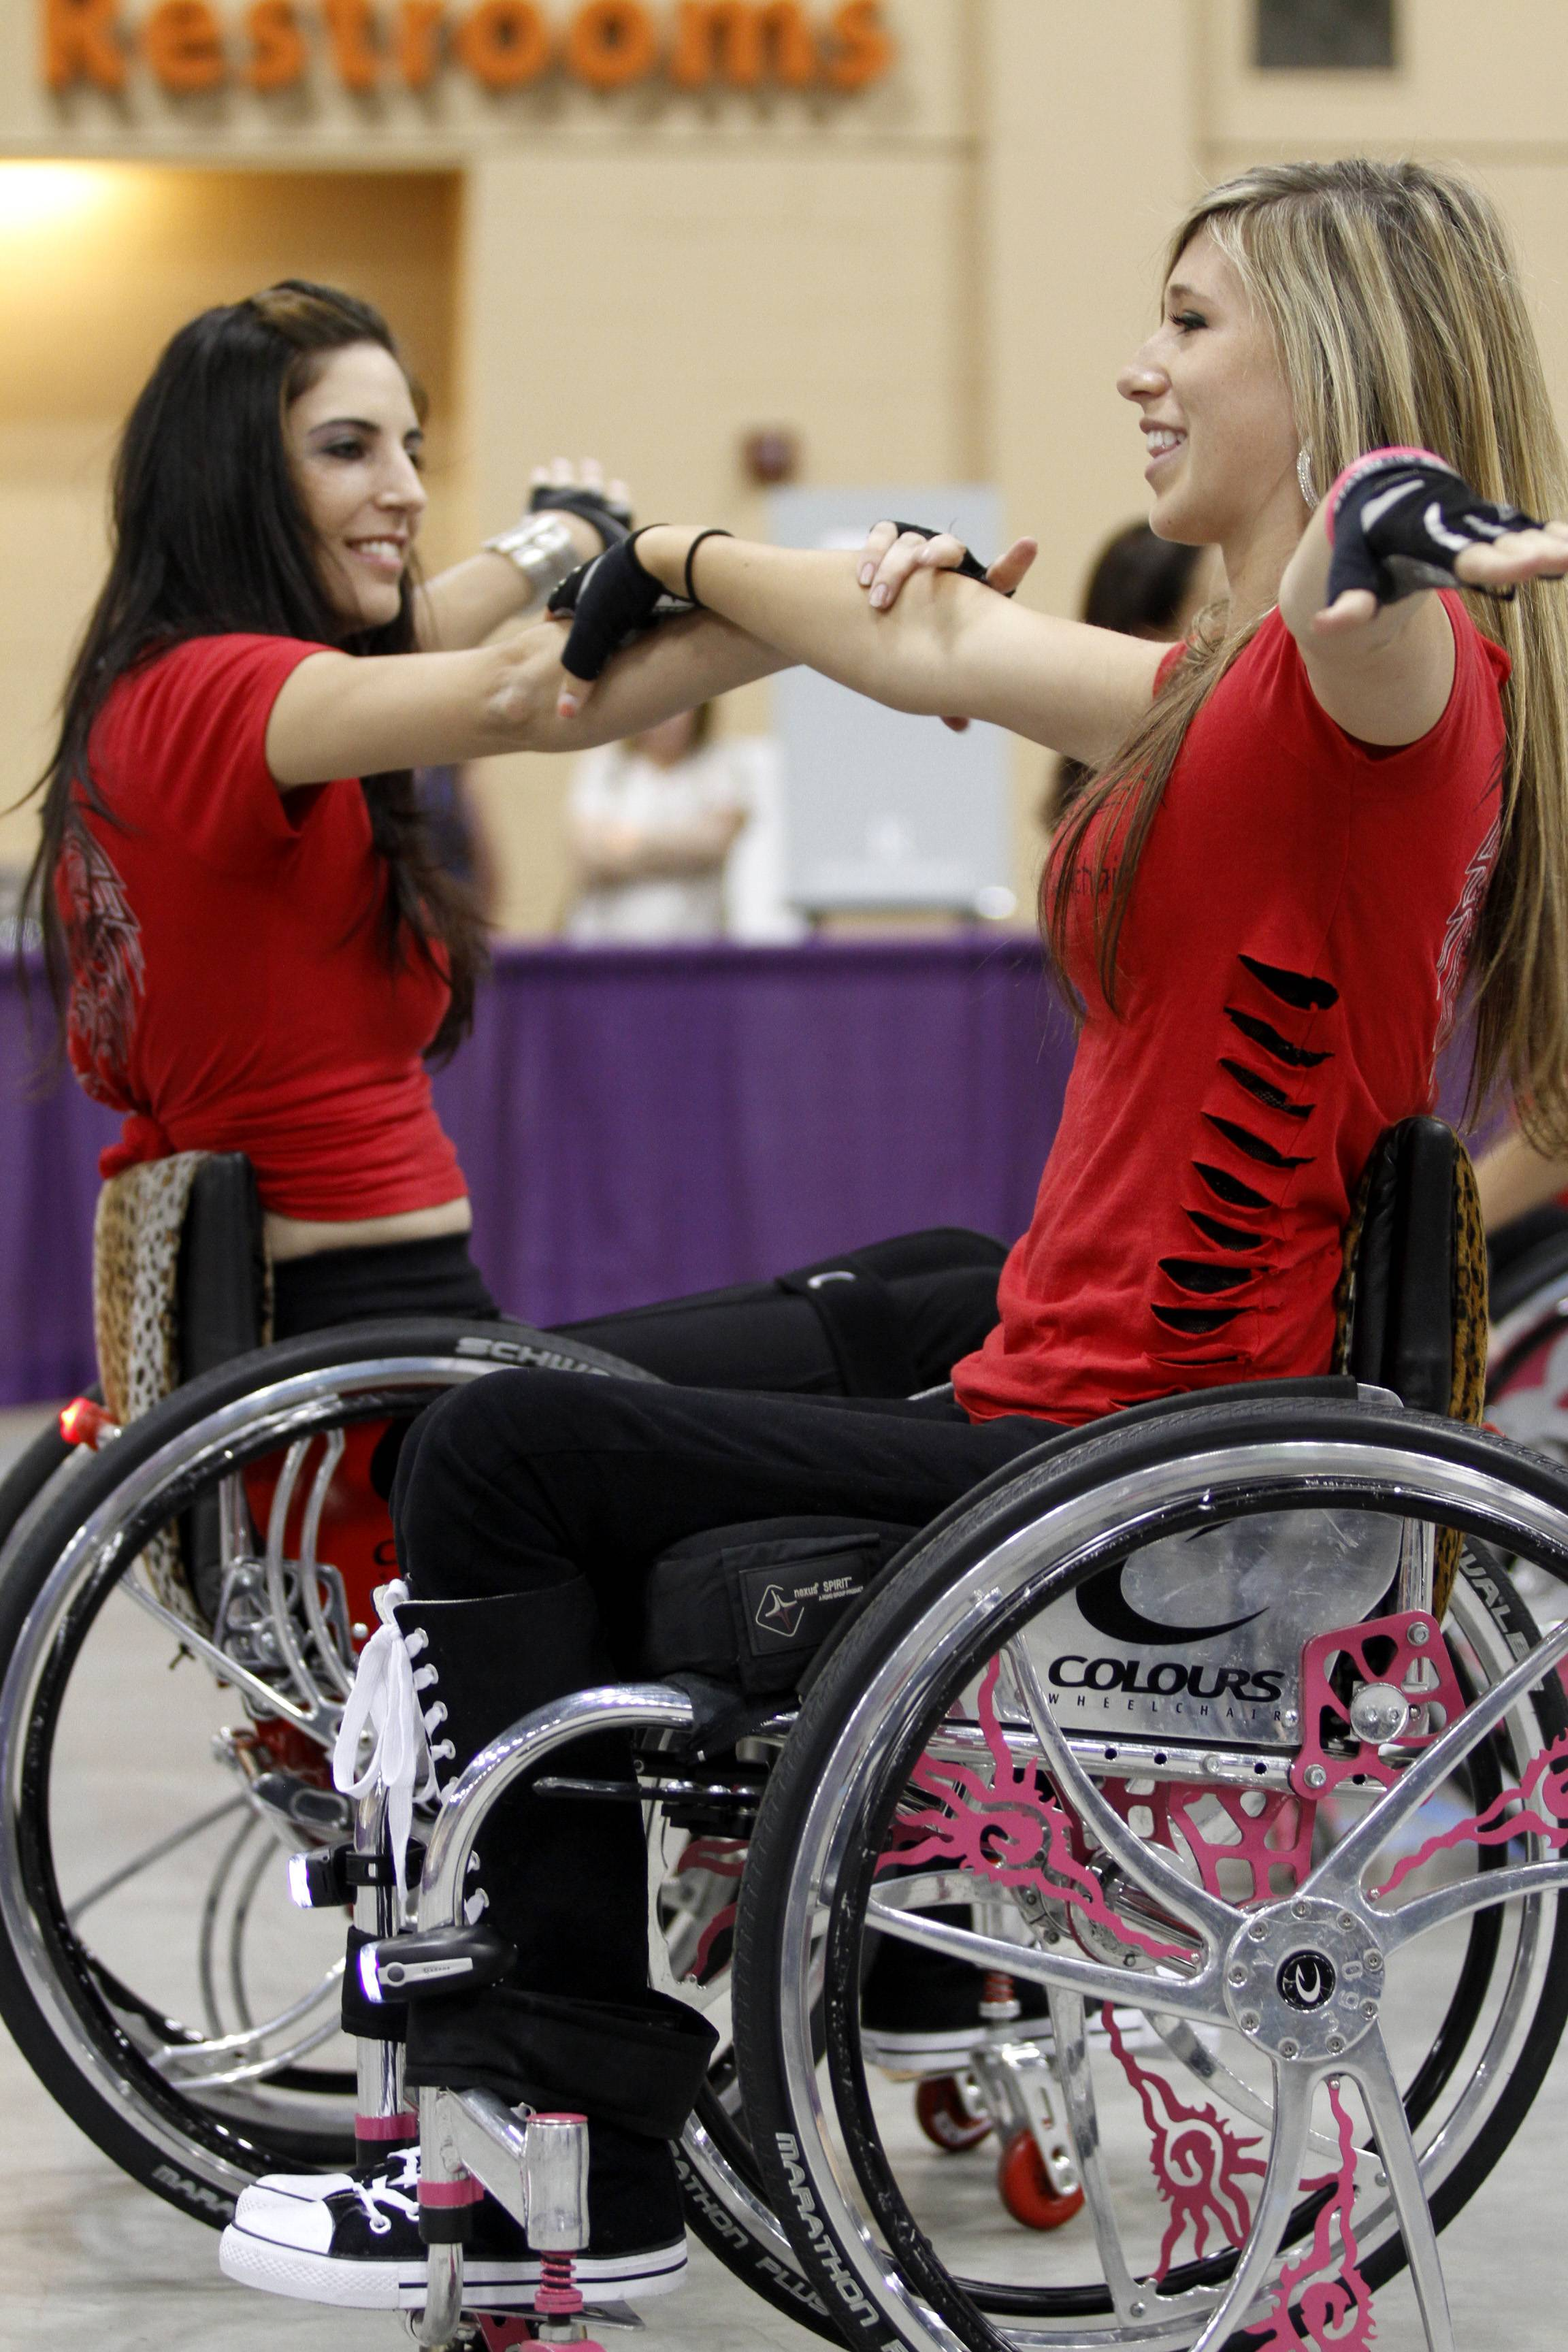 Chelsie Hill, right, from Monterey, California, and Mia Schailkewitz, from North Hollywood, California, perform a dance routine at the 2011 Abilities Expo in Schaumburg. They were part of a wheelchair dance crew called Colors in Motion.